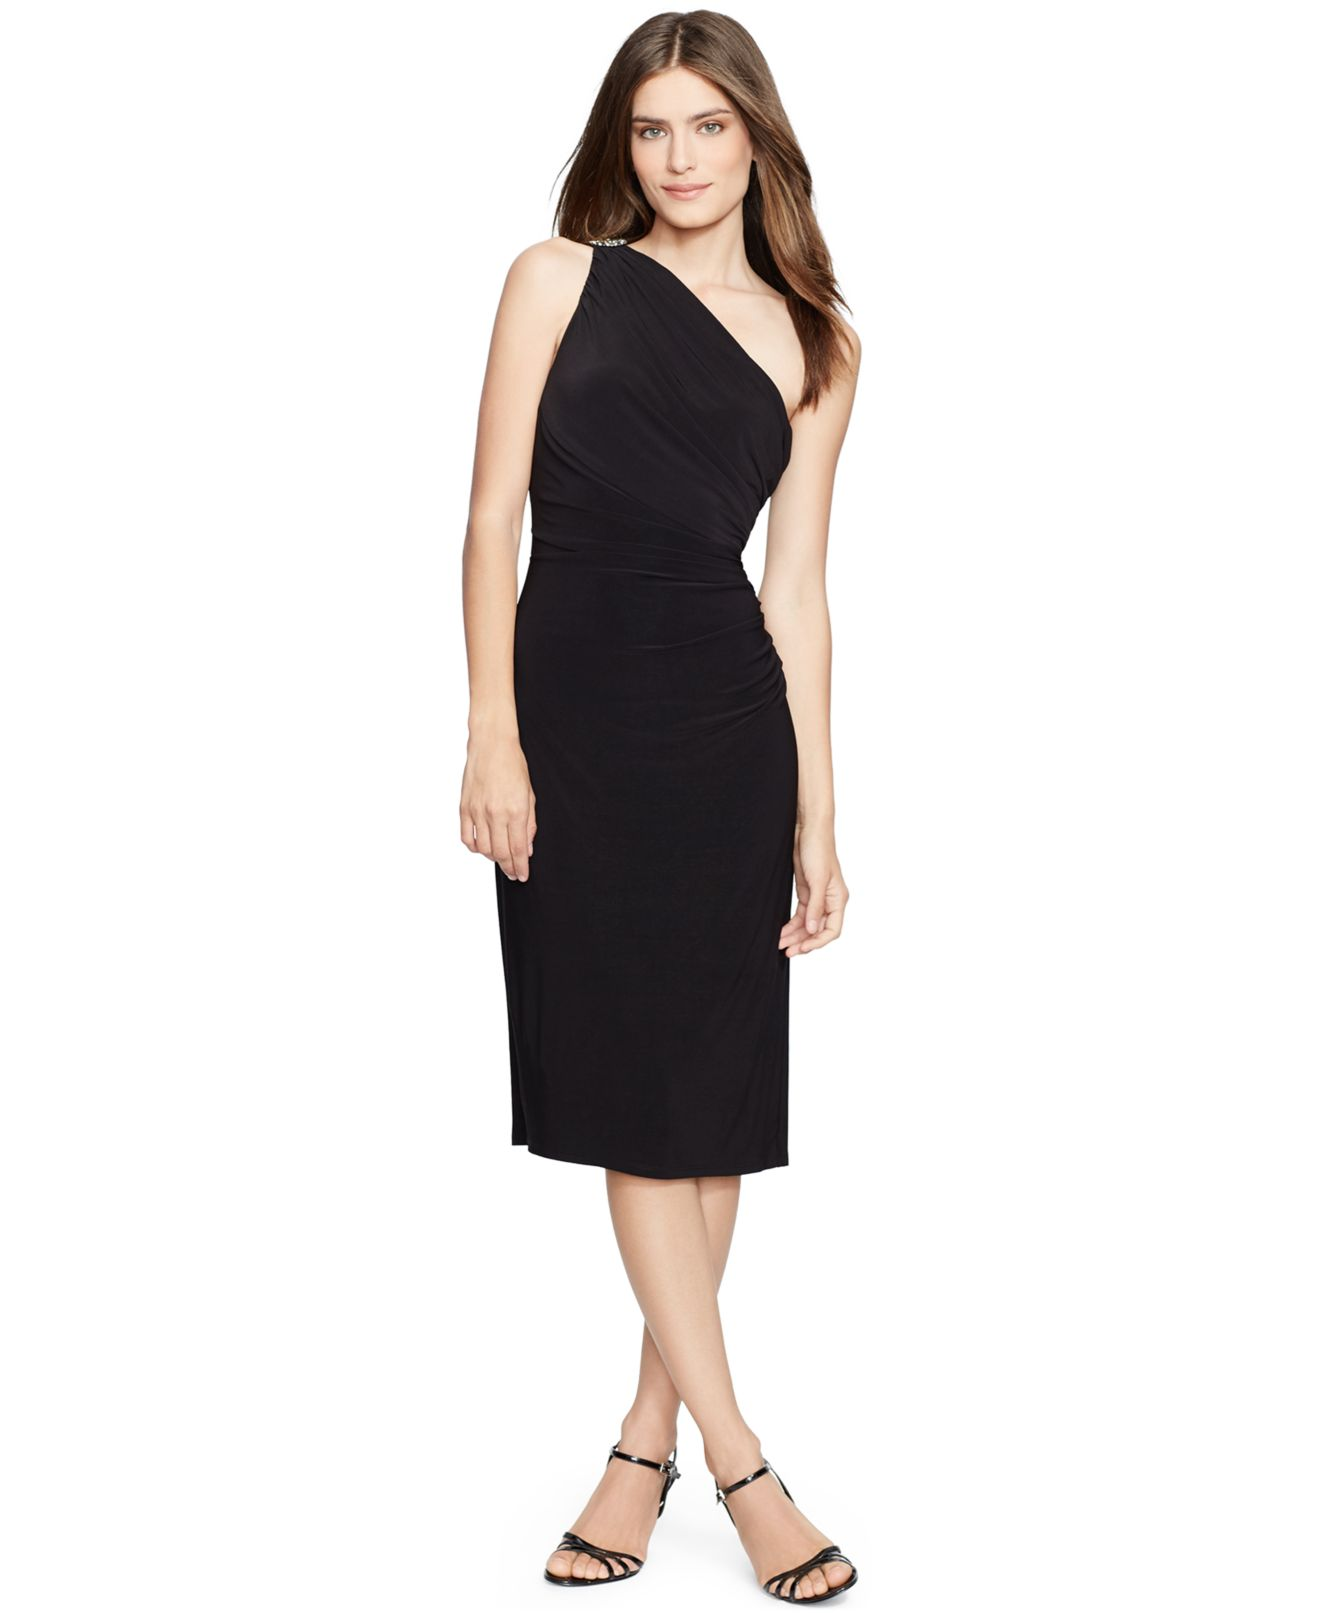 Luxury Macys Formal Dresses Macys Plus Size Formal Dresses Macys Womens